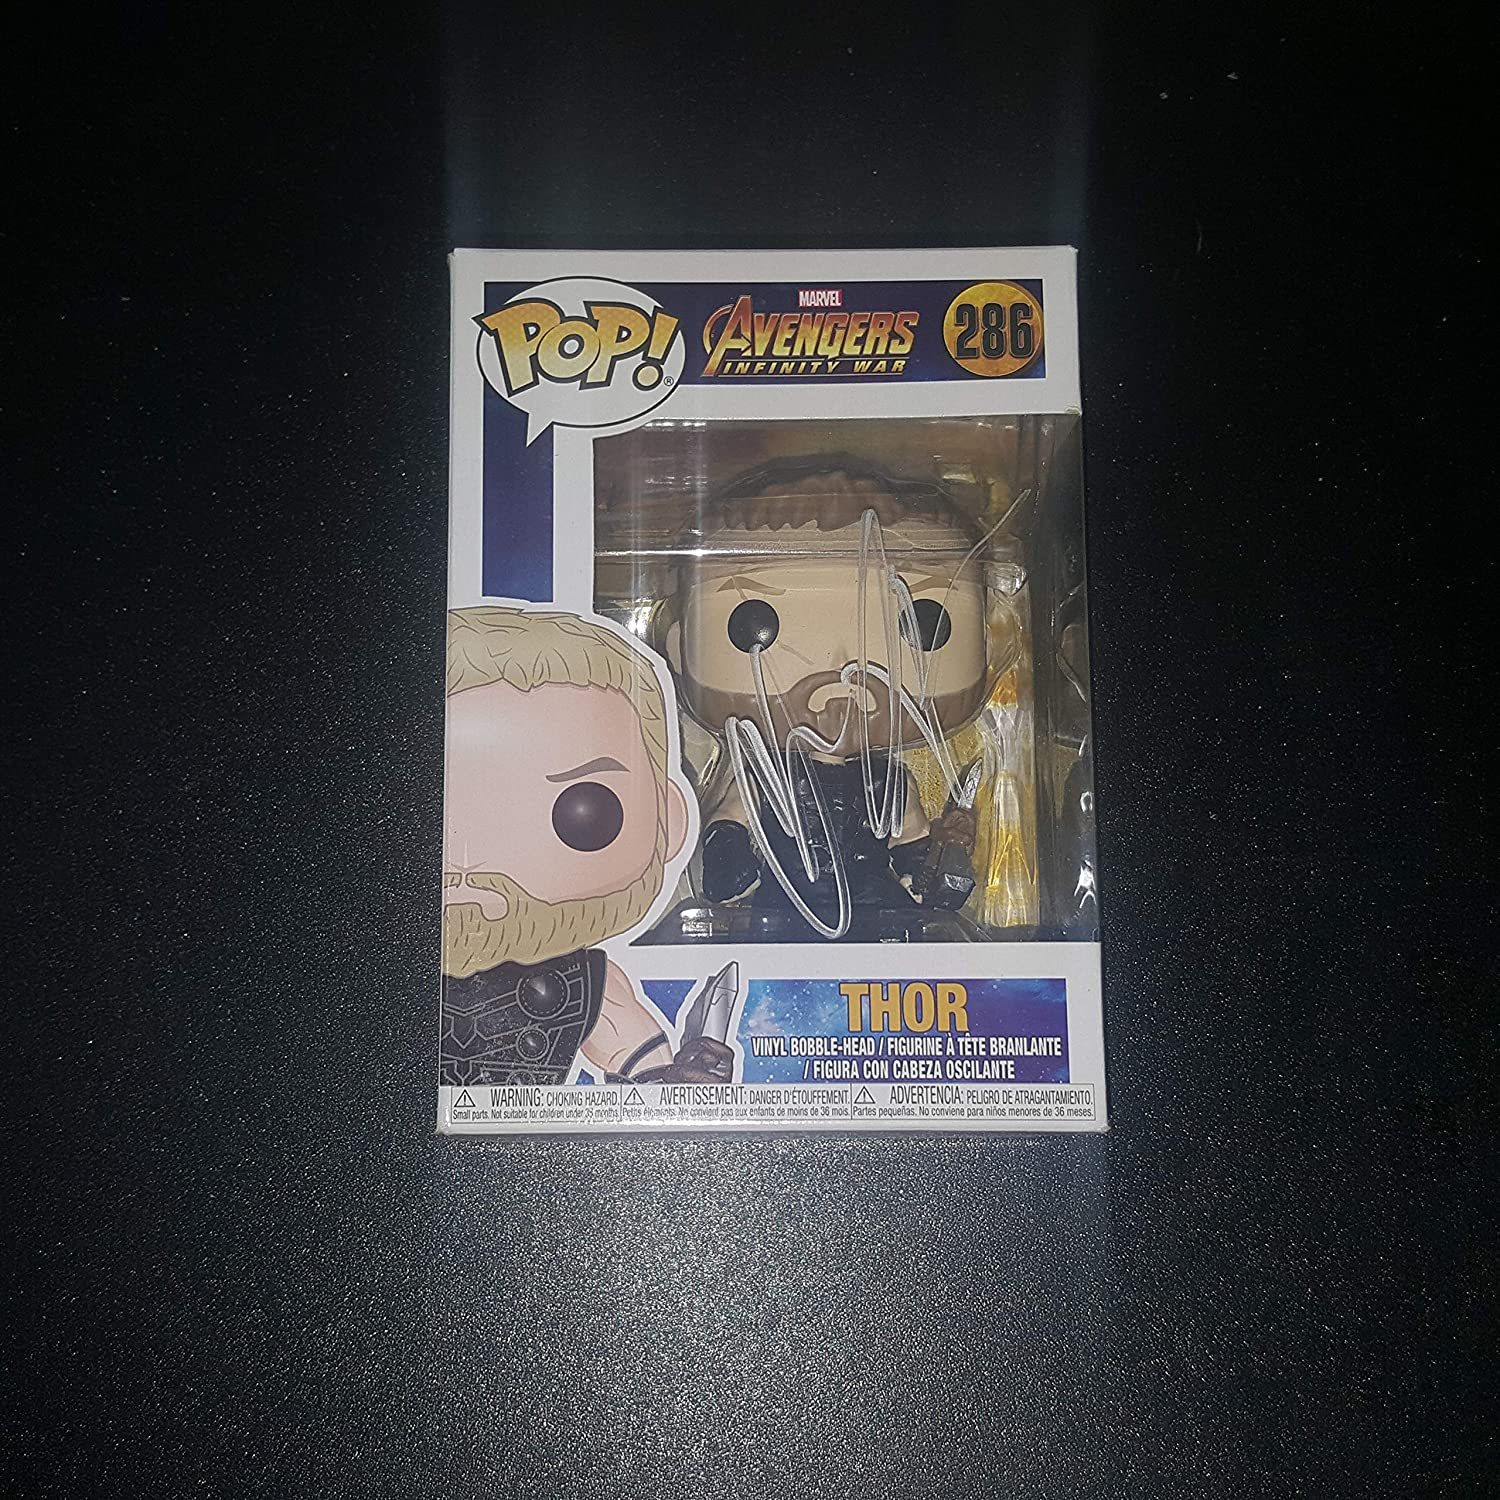 Chris Hemsworth - Autographed Signed THOR FUNKO POP 286 Vinyl Figure - Avengers Infinity War - MARVEL